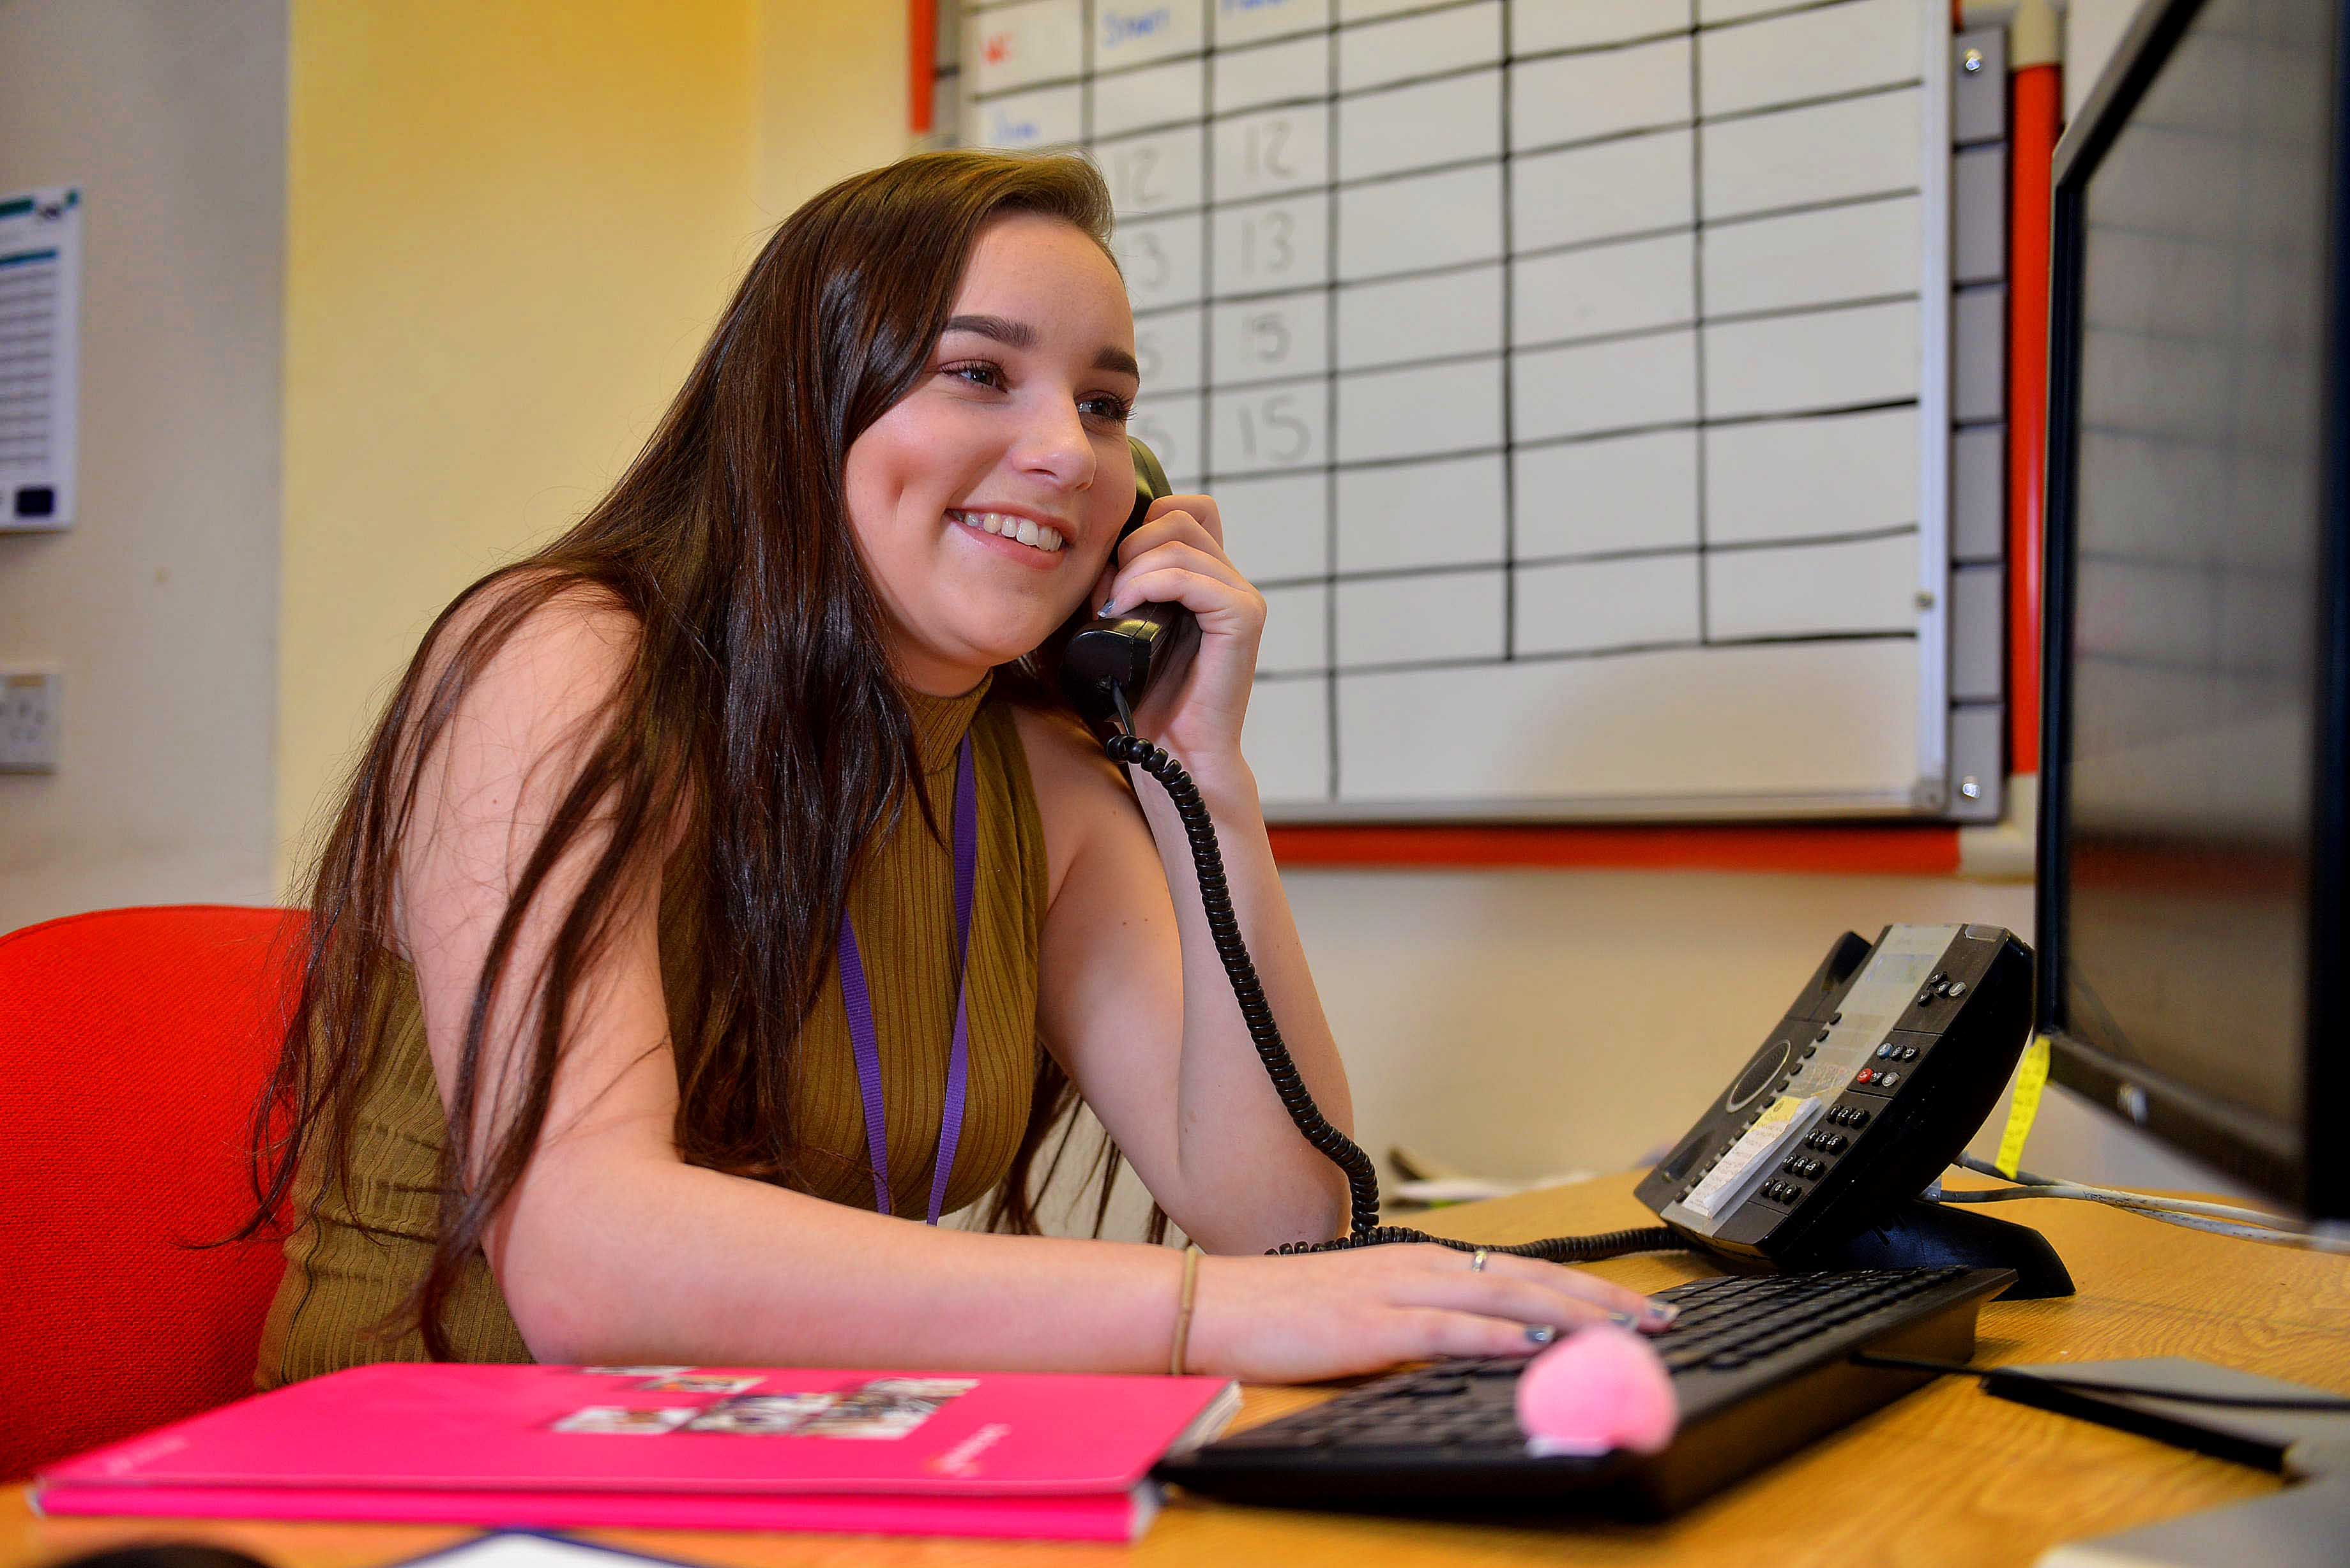 Ellie Taylor Star Employment Services Investing in youth apprenticeships